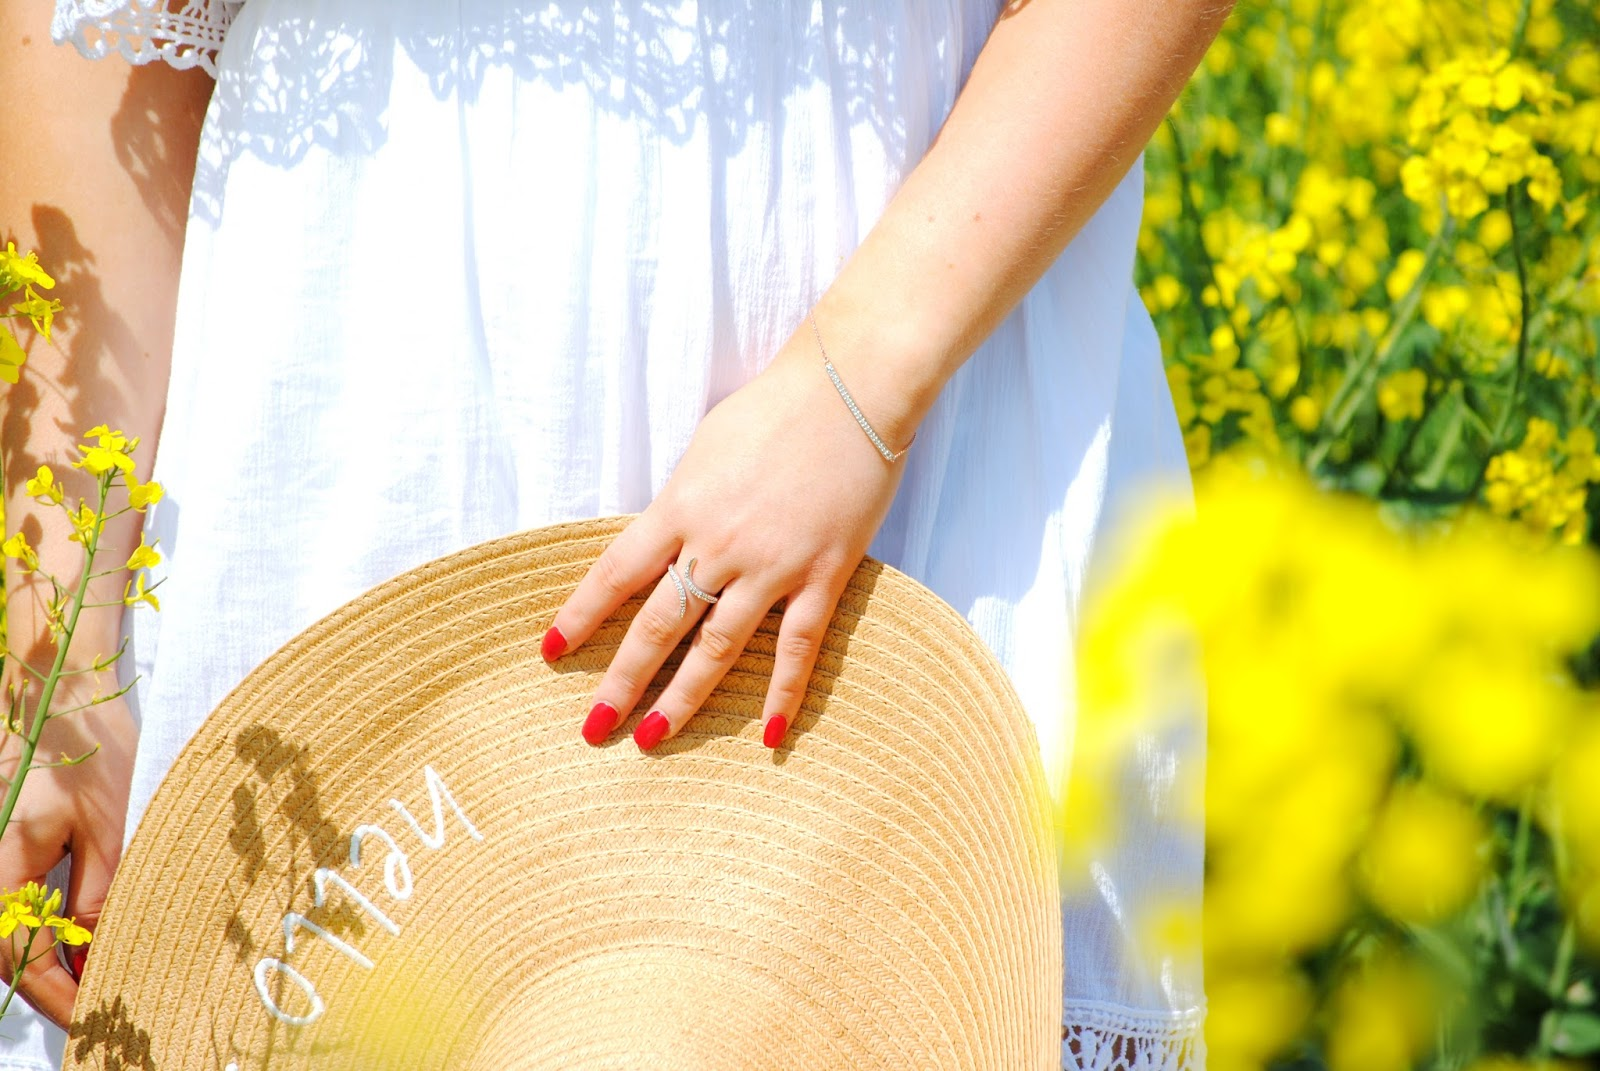 hello summer fashion photo yellow flowers primark atmosphere nikon photography gemporia diamond bracelet giveaway competition photoshoot